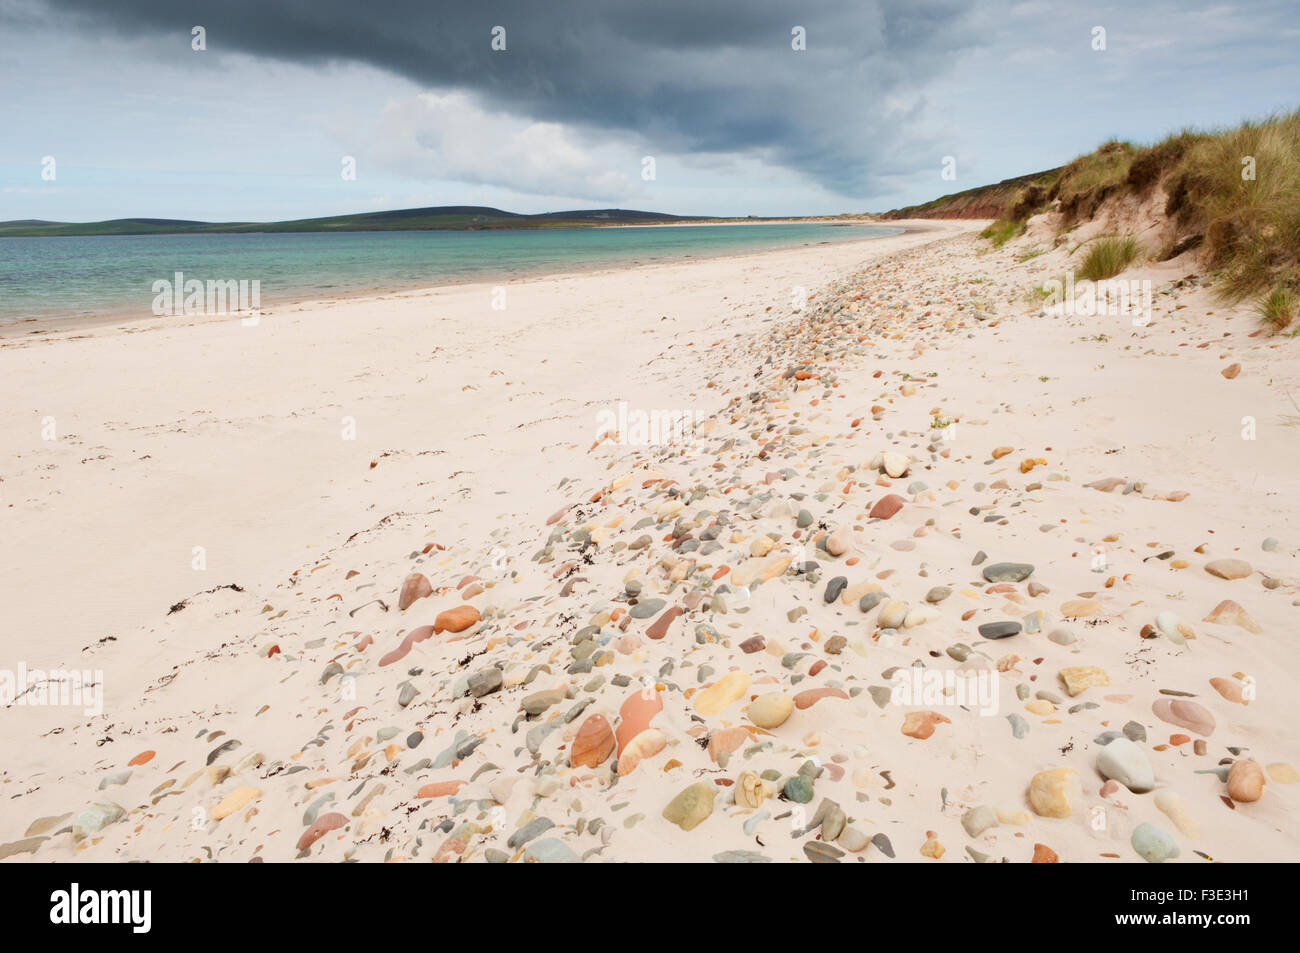 The Sands of Mussetter on the island of Eday, Orkney Islands, Scotland. Stock Photo